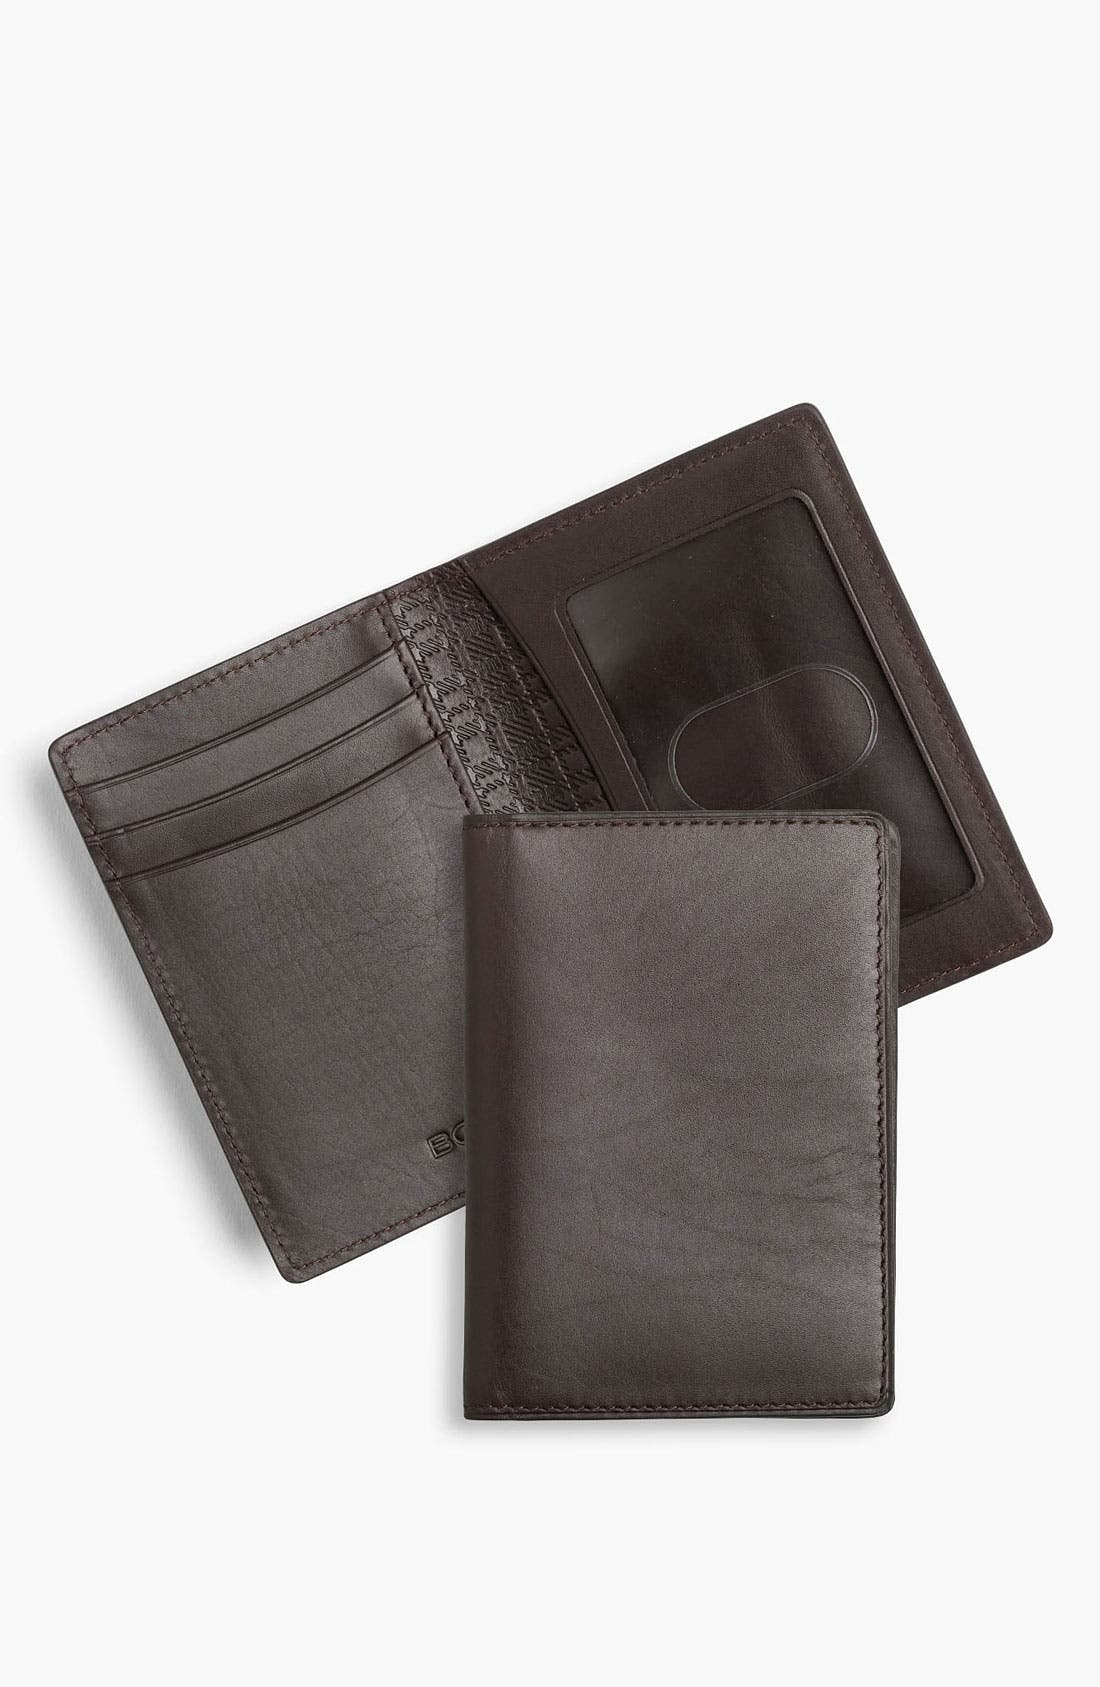 Alternate Image 1 Selected - Boconi 'Xavier' Card Case